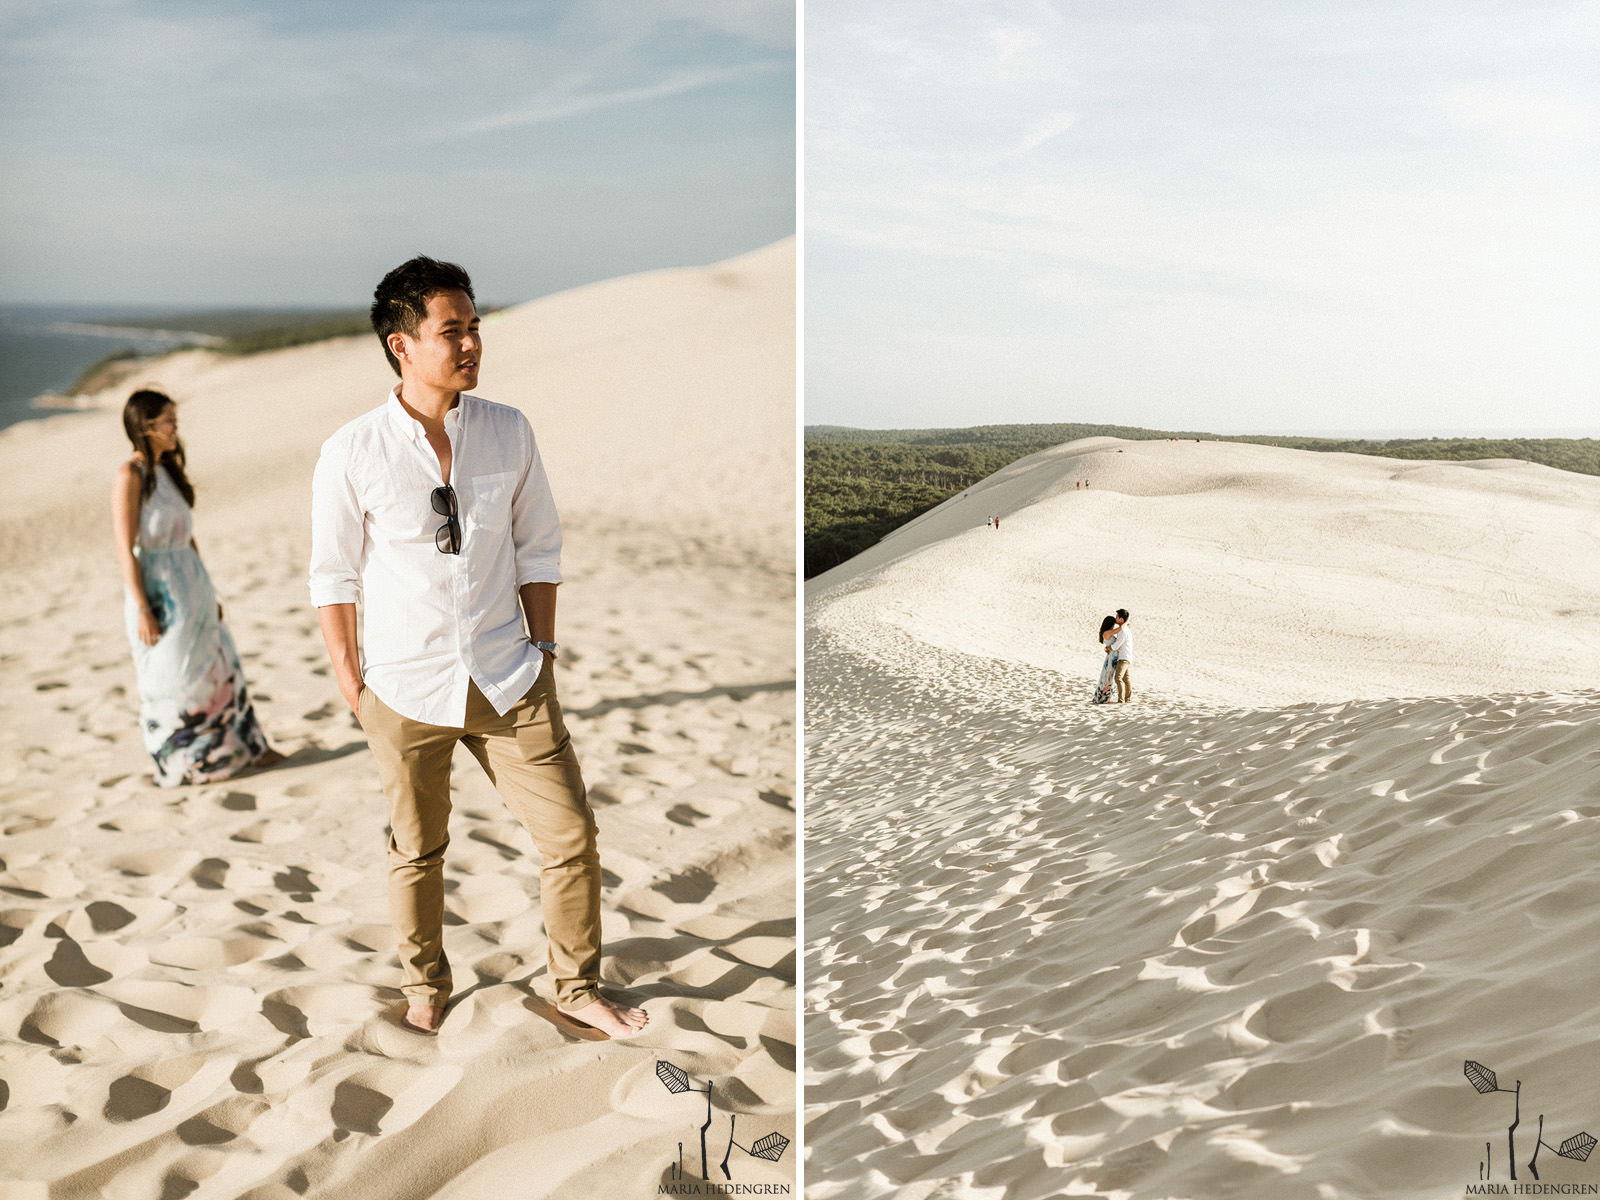 desert dune inspiration shoot